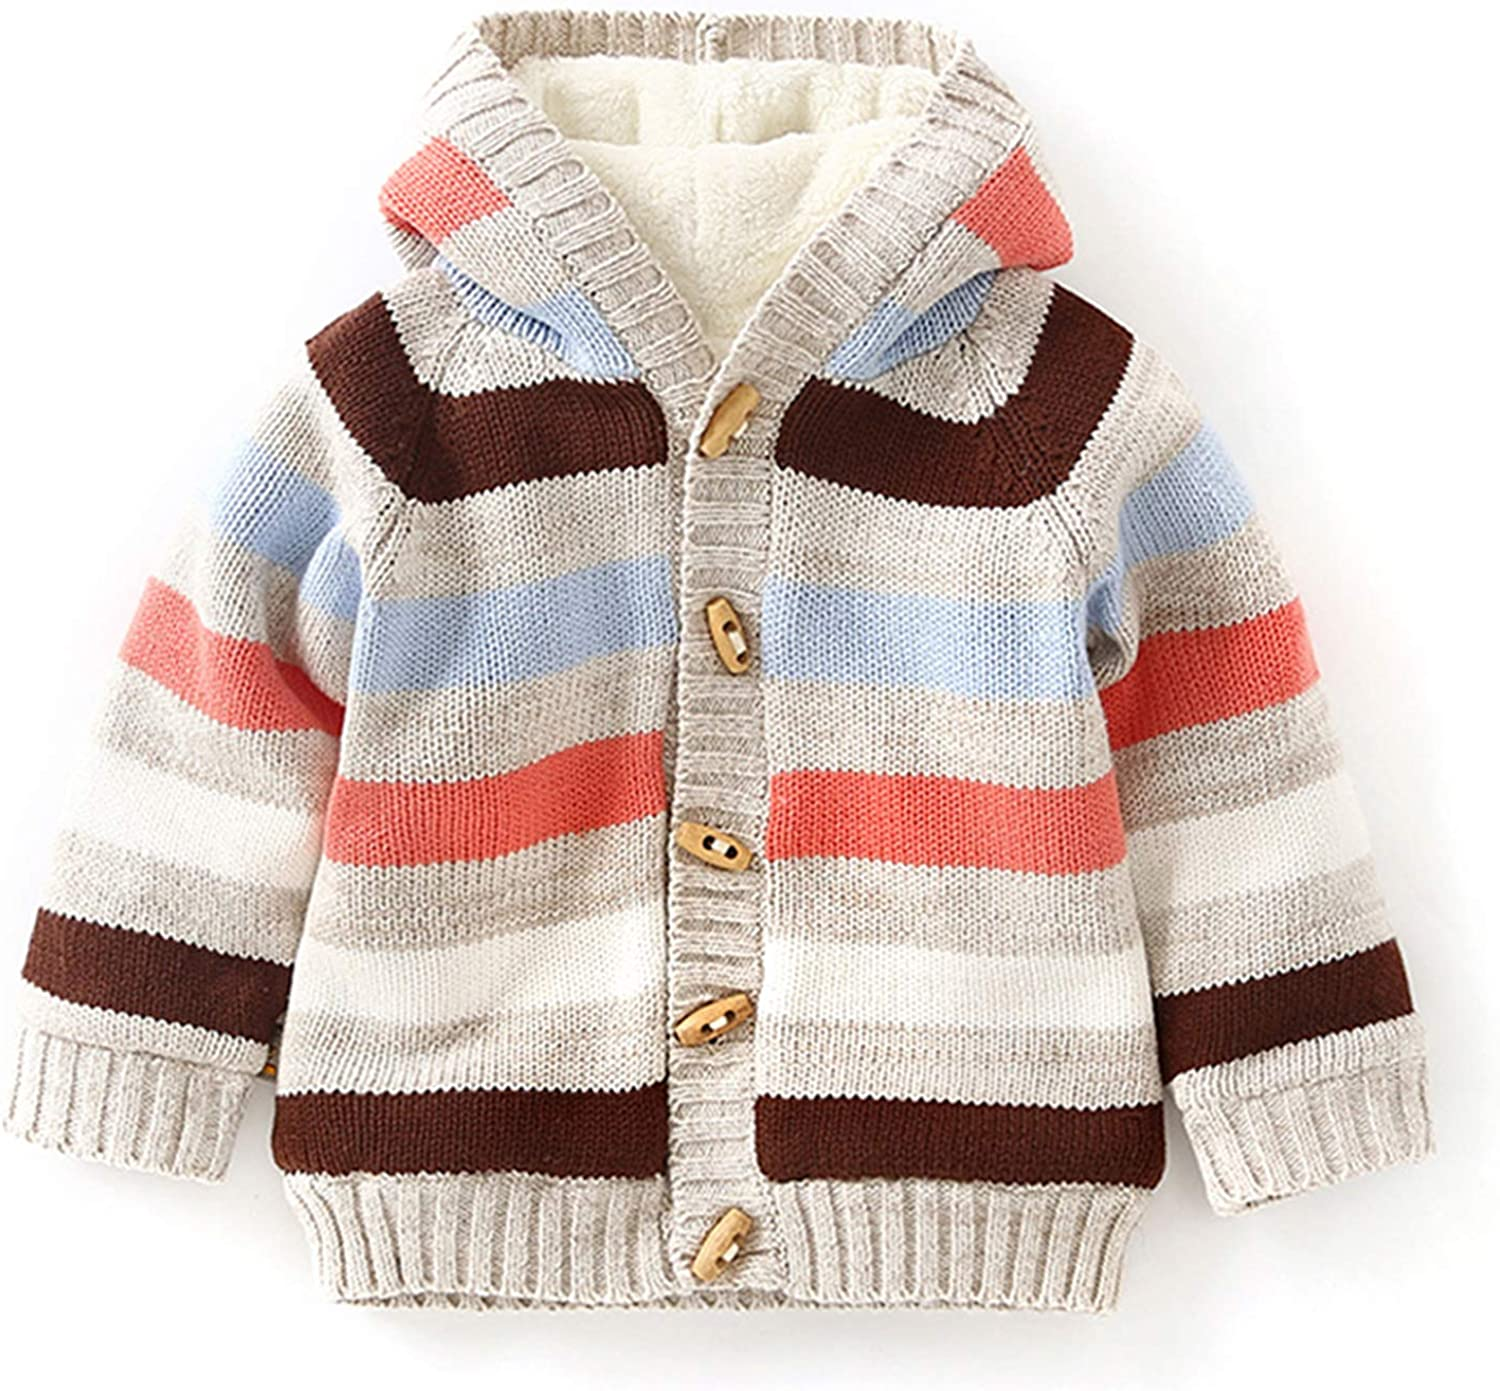 Baby Toddler Boy Girl Knitted Cardigan Hooded Sweater Fall Winter Botton Warm